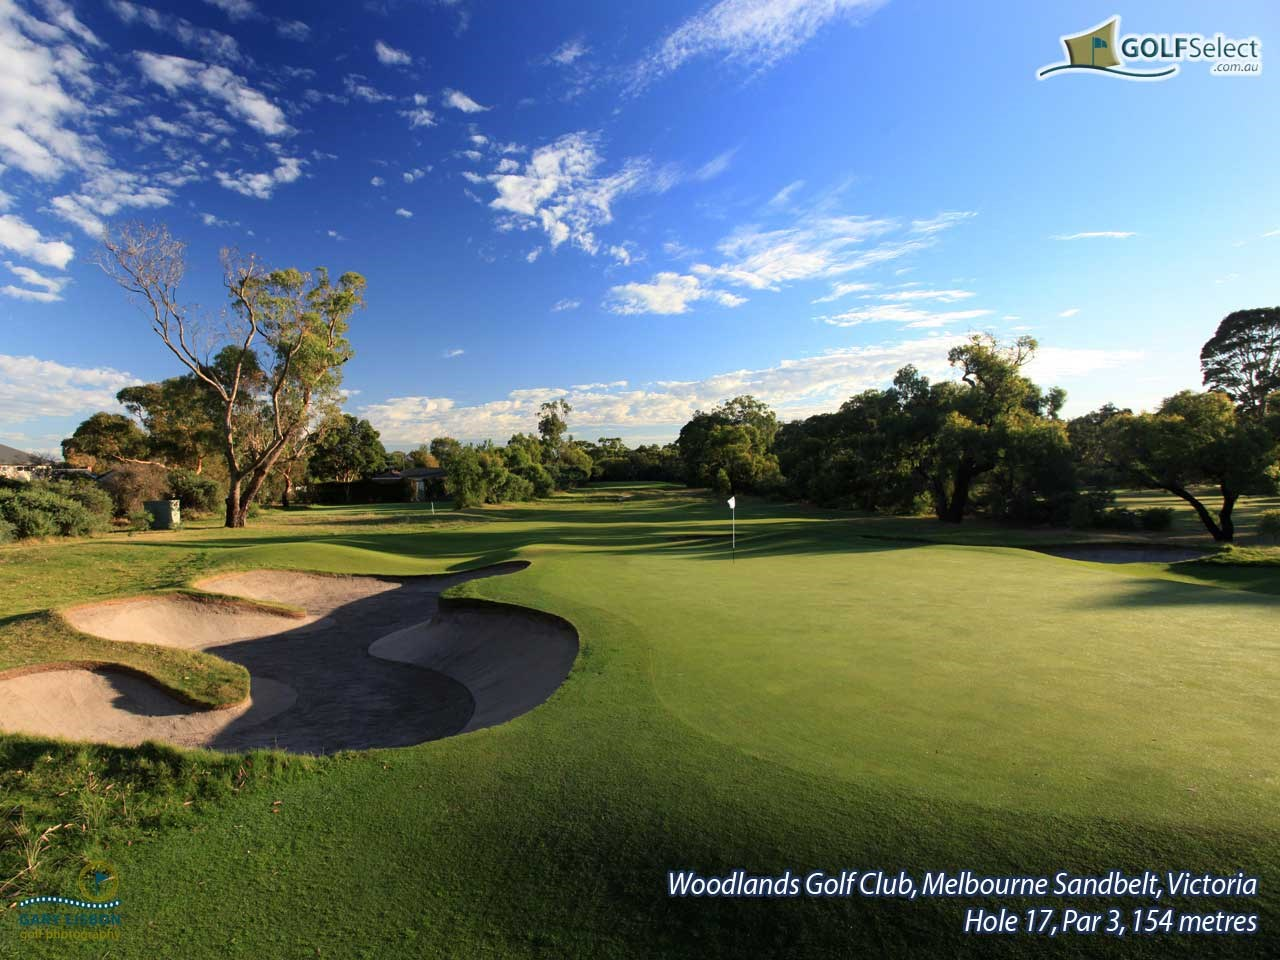 Woodlands Golf Club Hole 17, Par 3, 154 metres